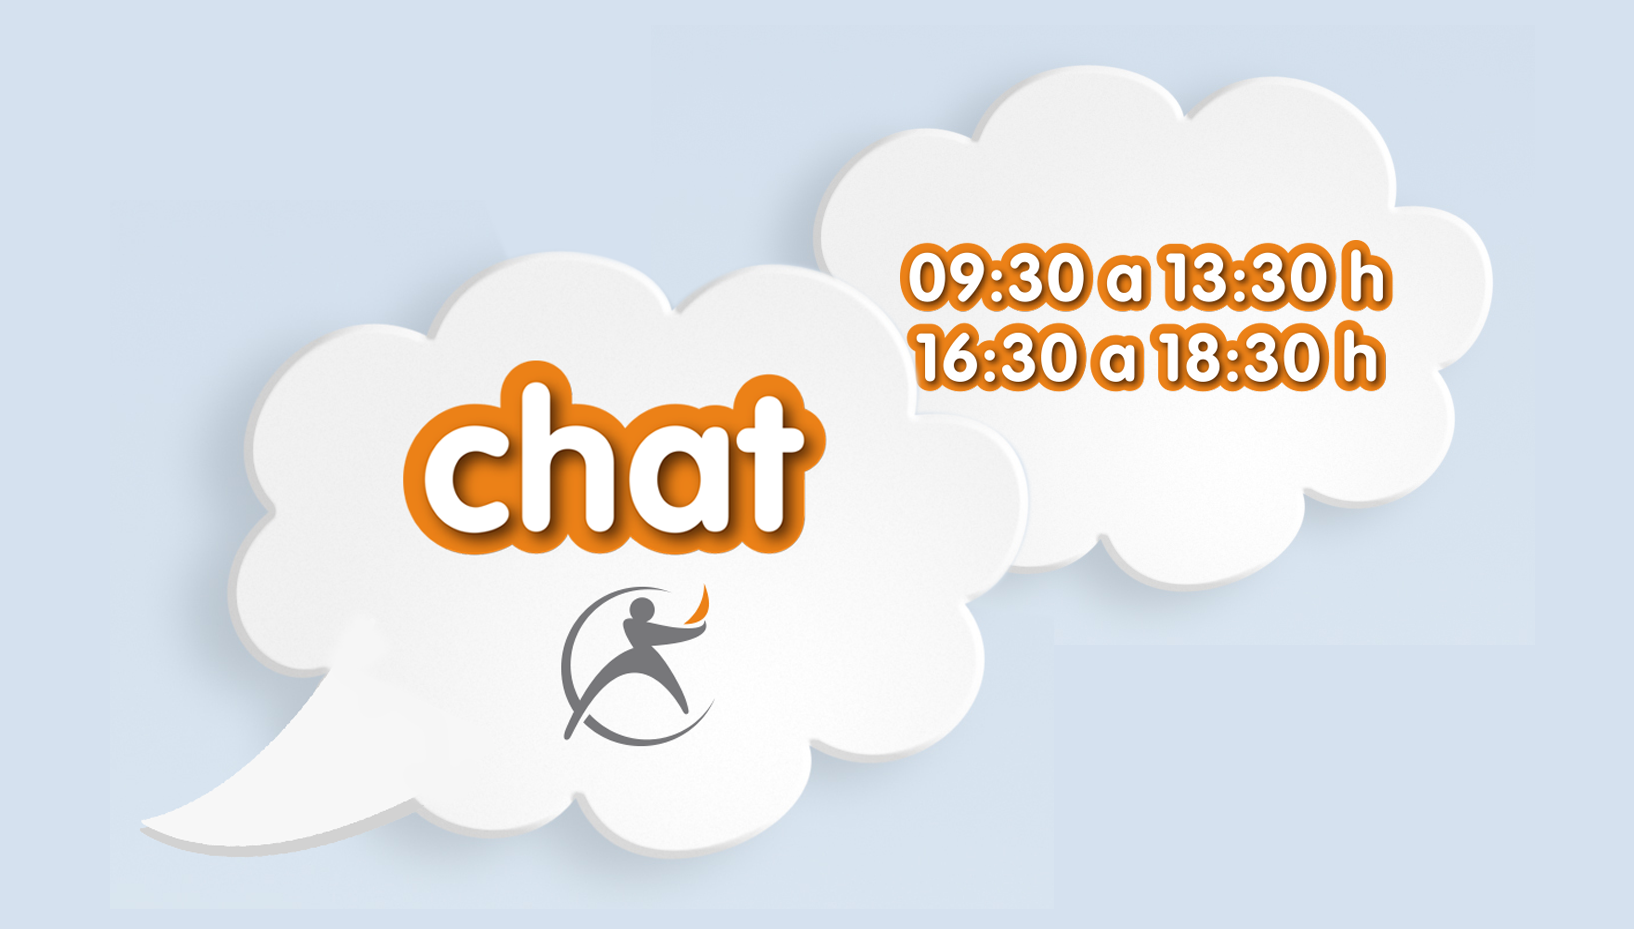 Chat Integra Energía